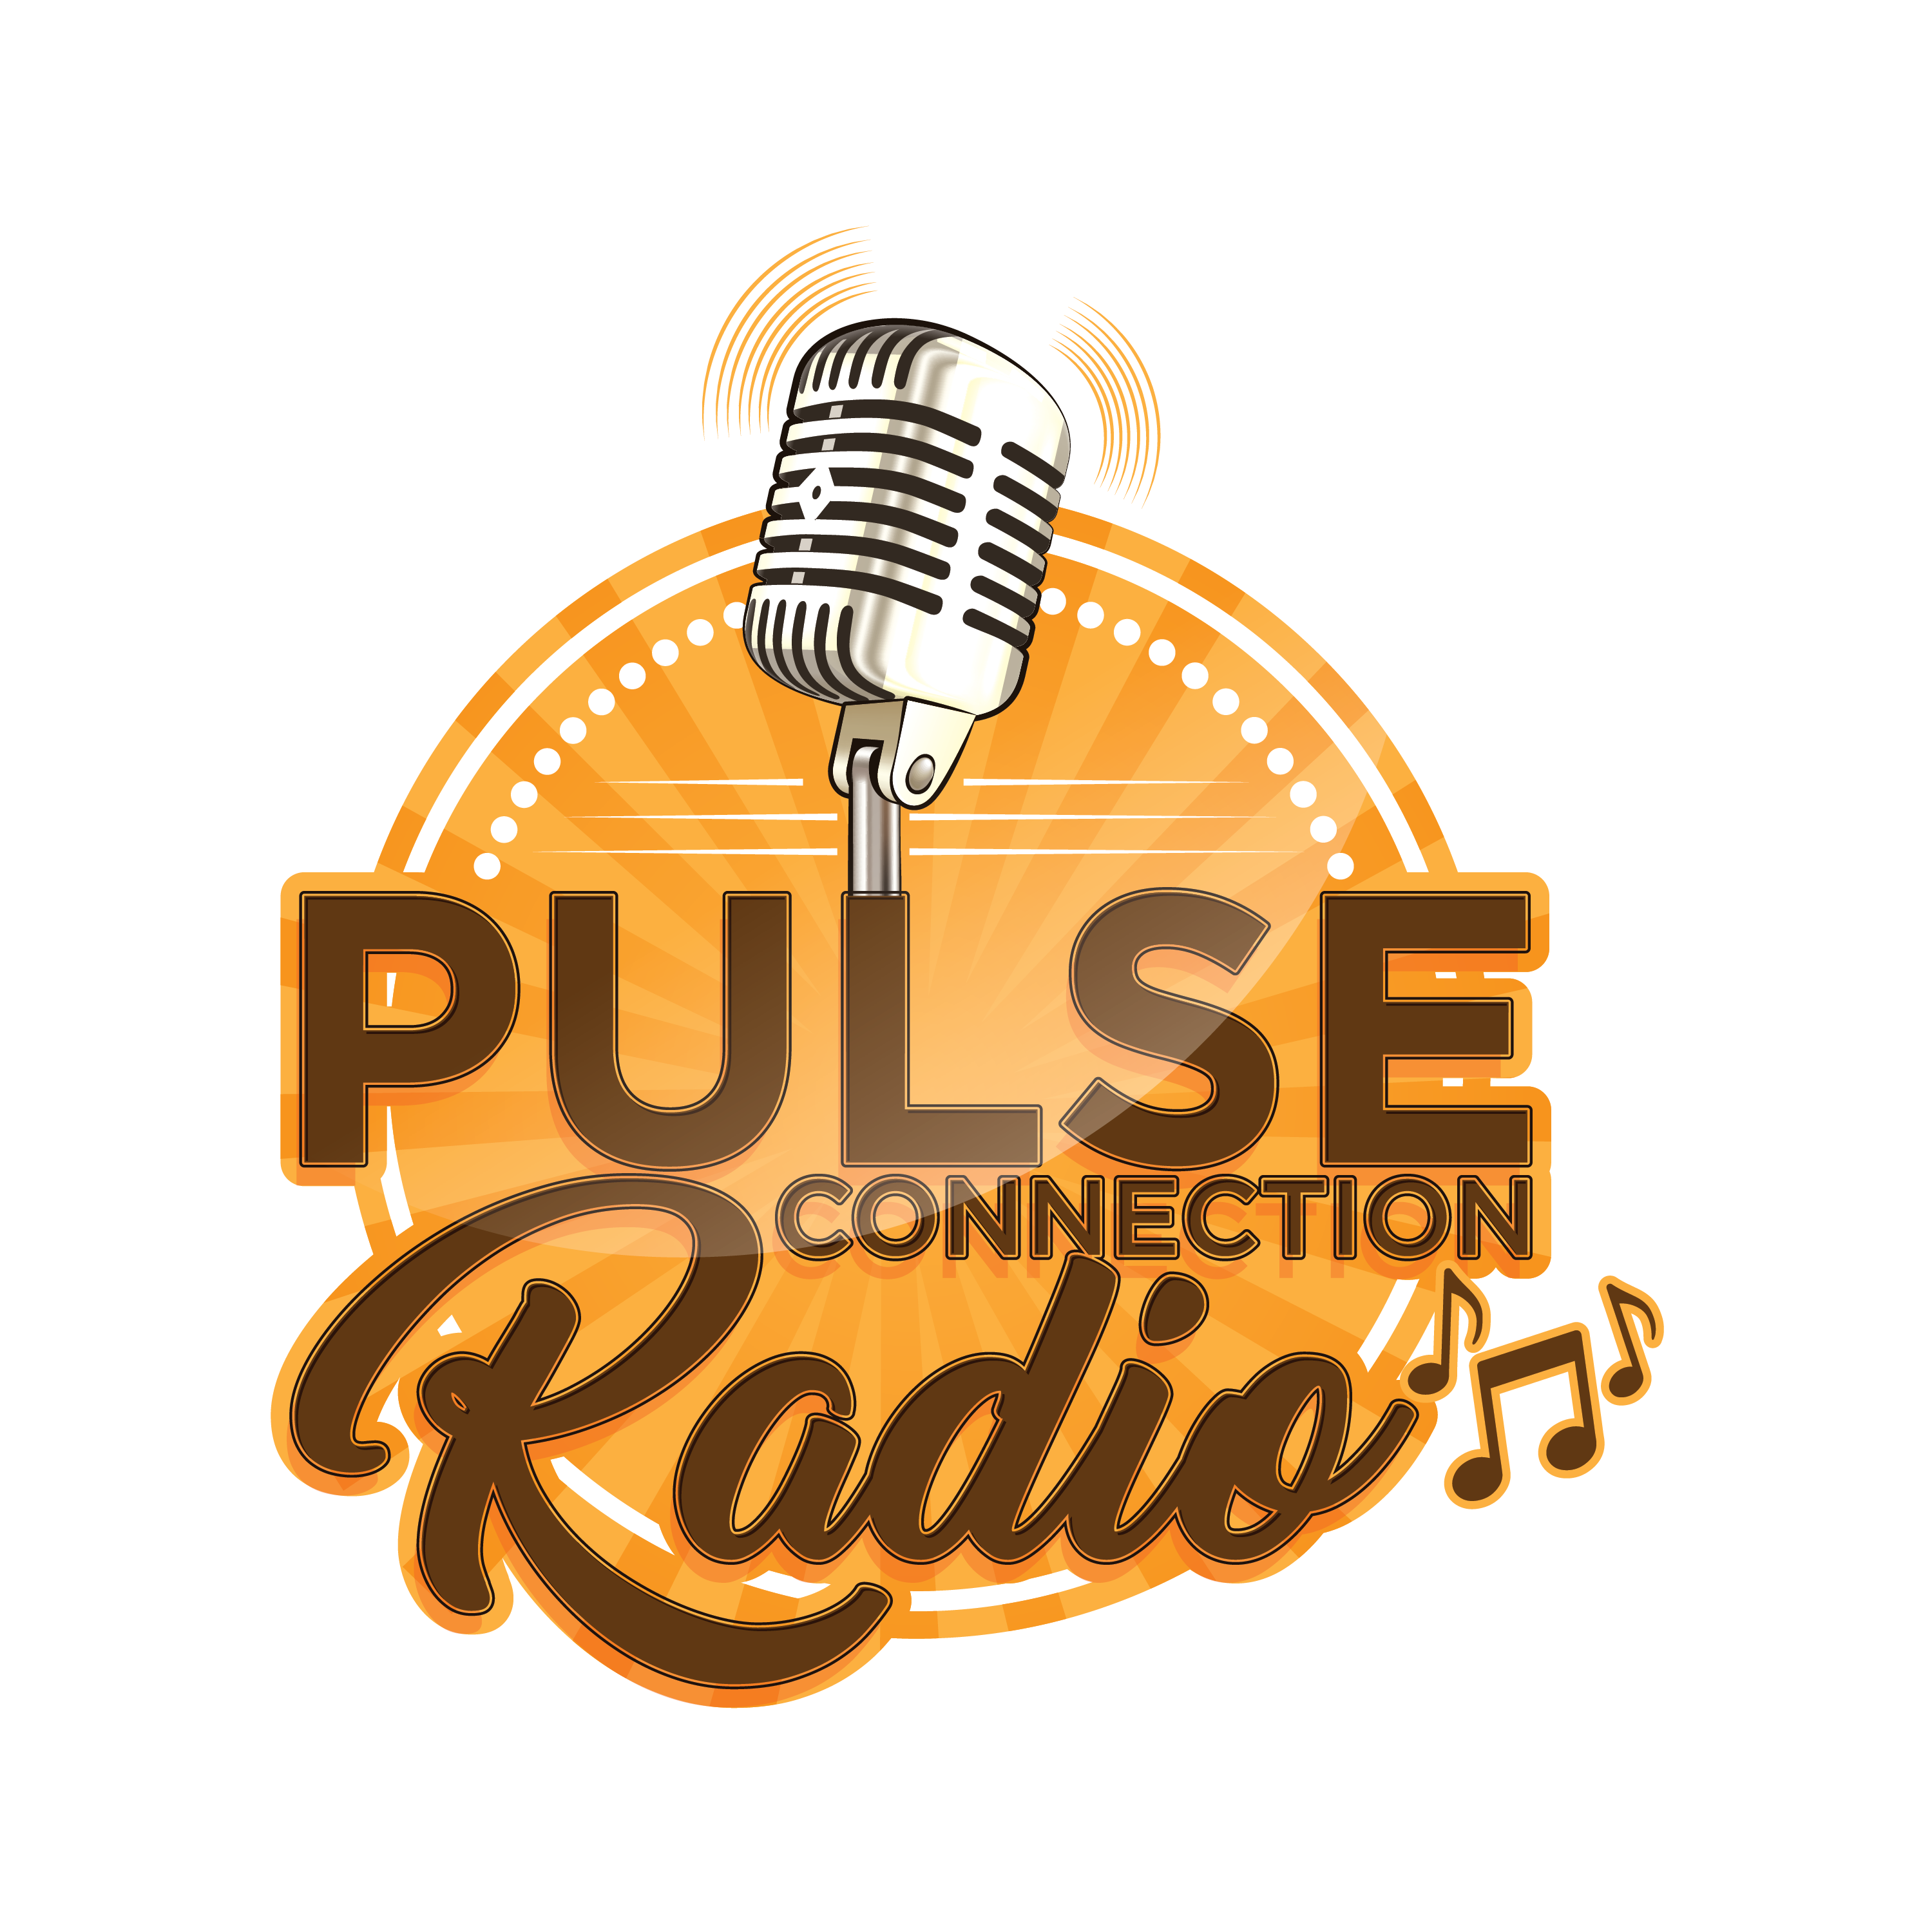 Pulse connection